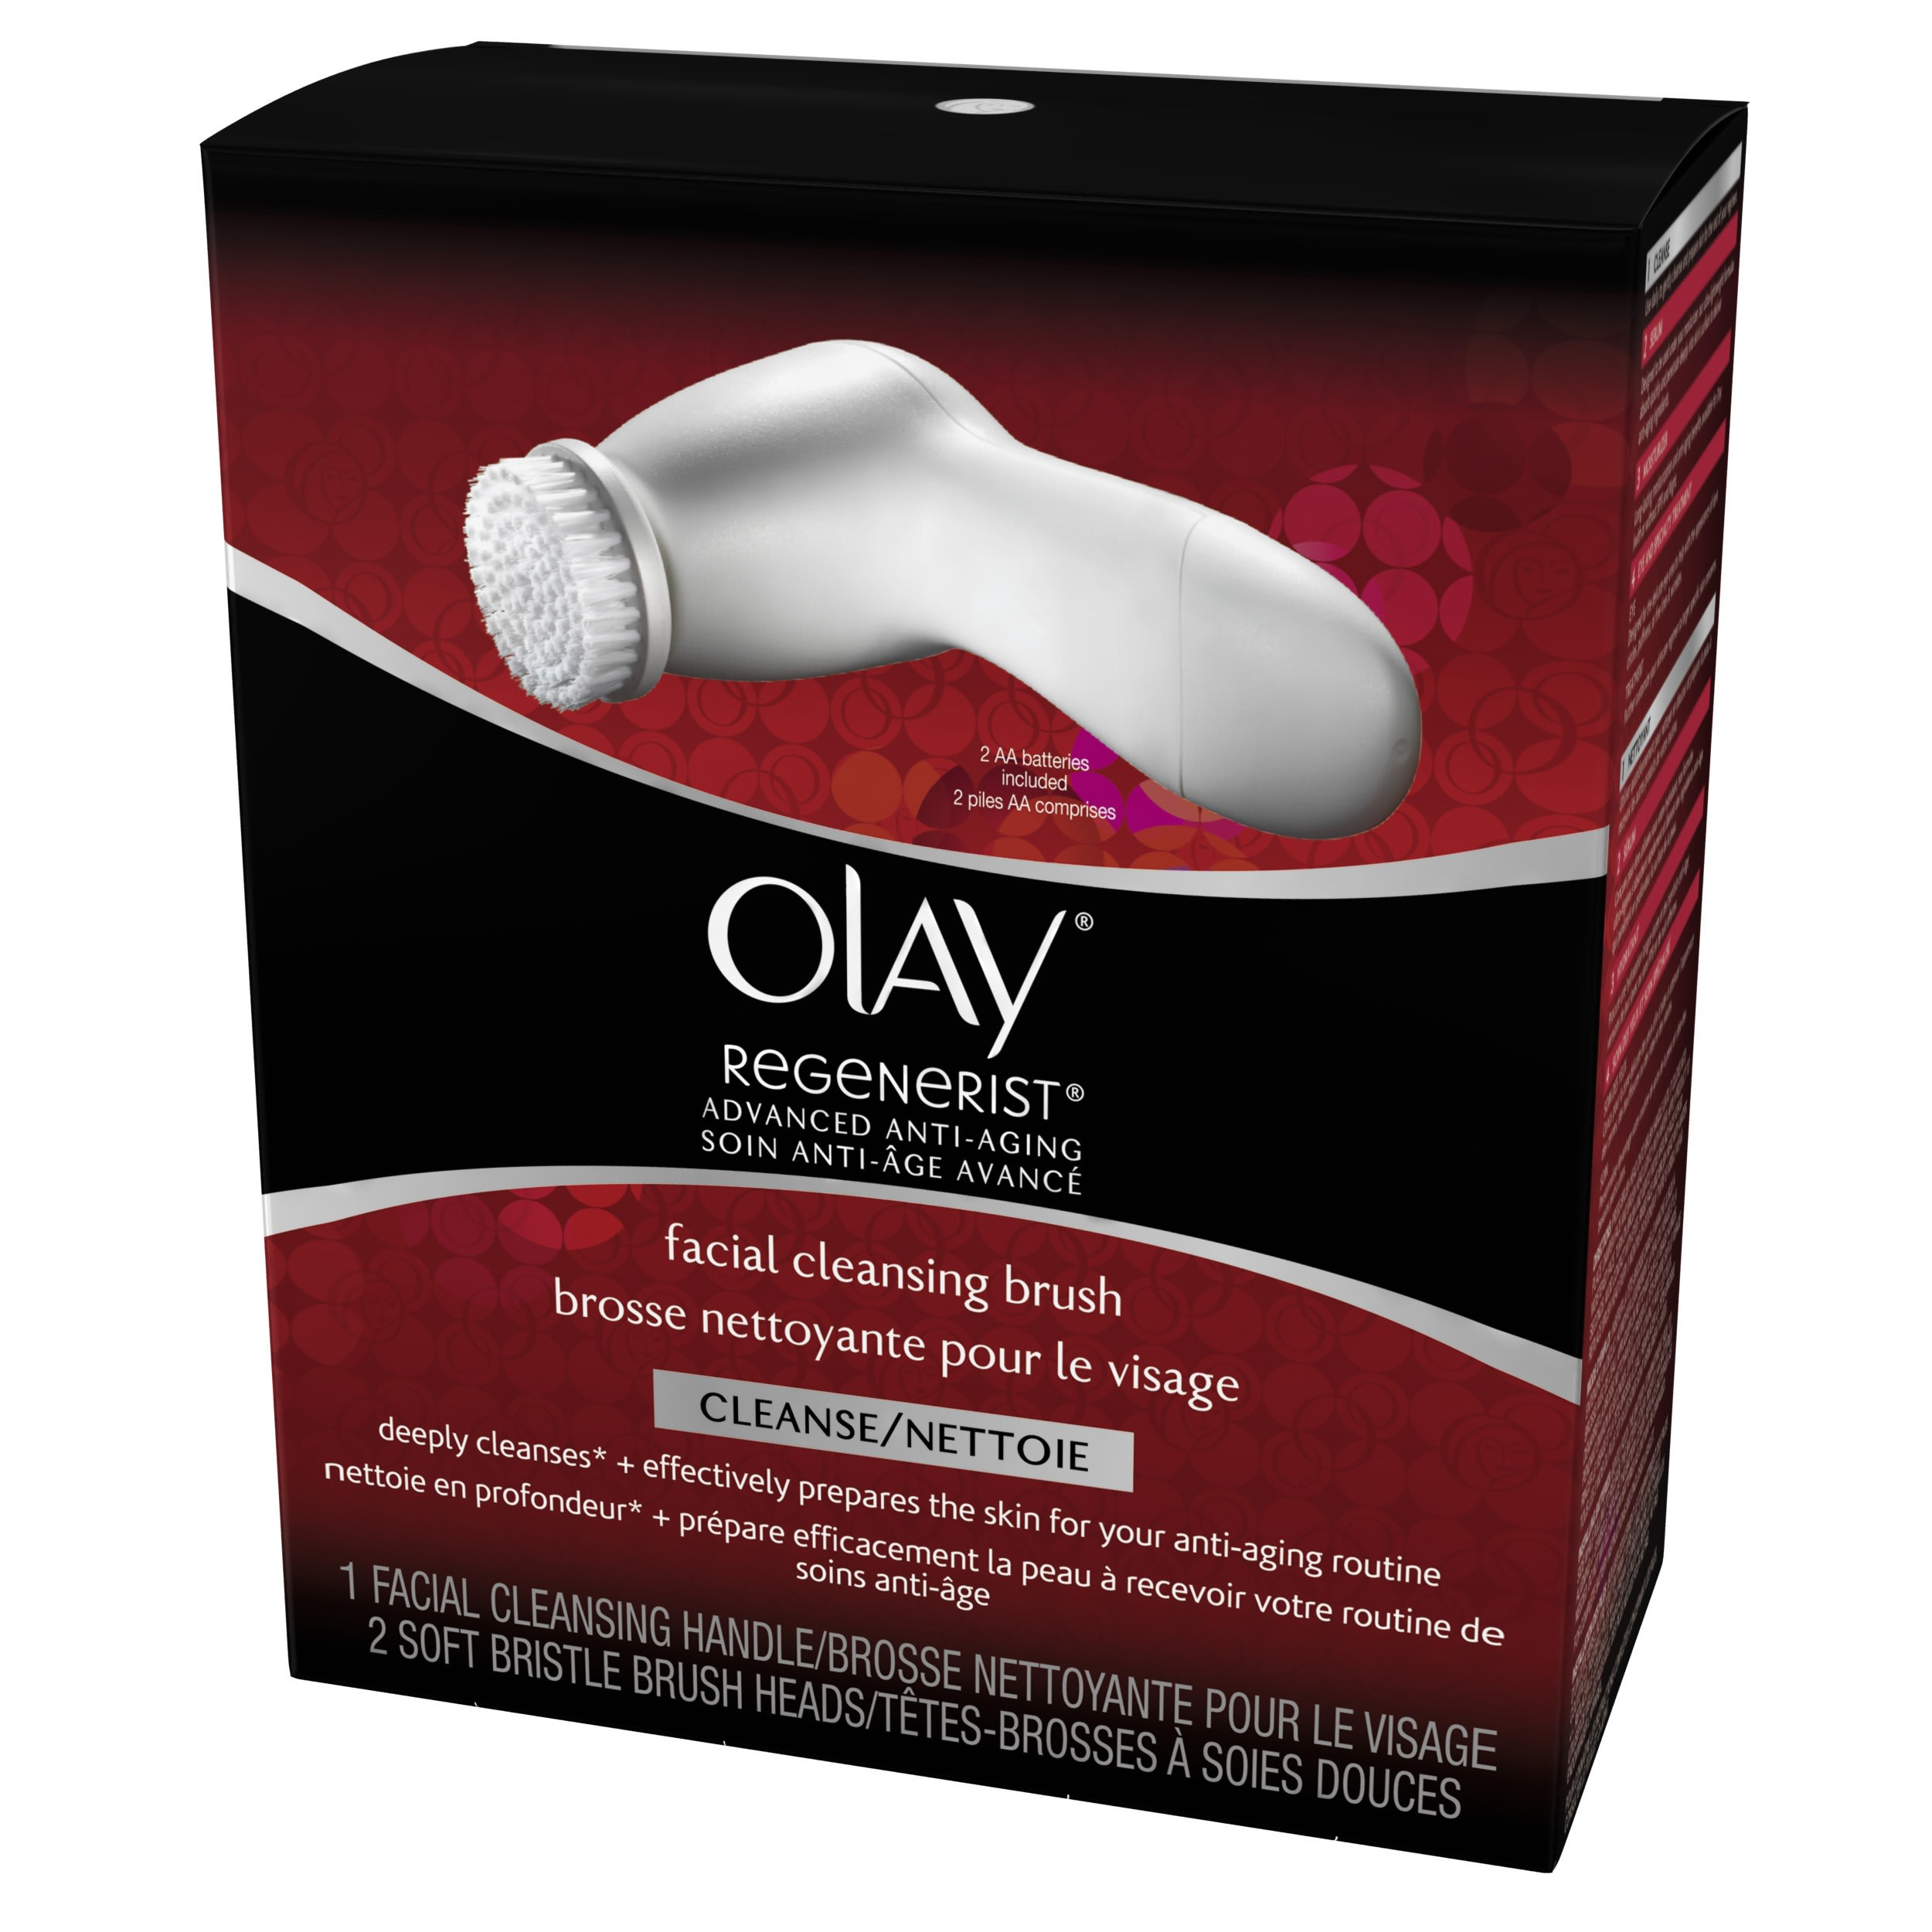 Regenerist Advanced Anti-Aging Facial Cleansing Brush